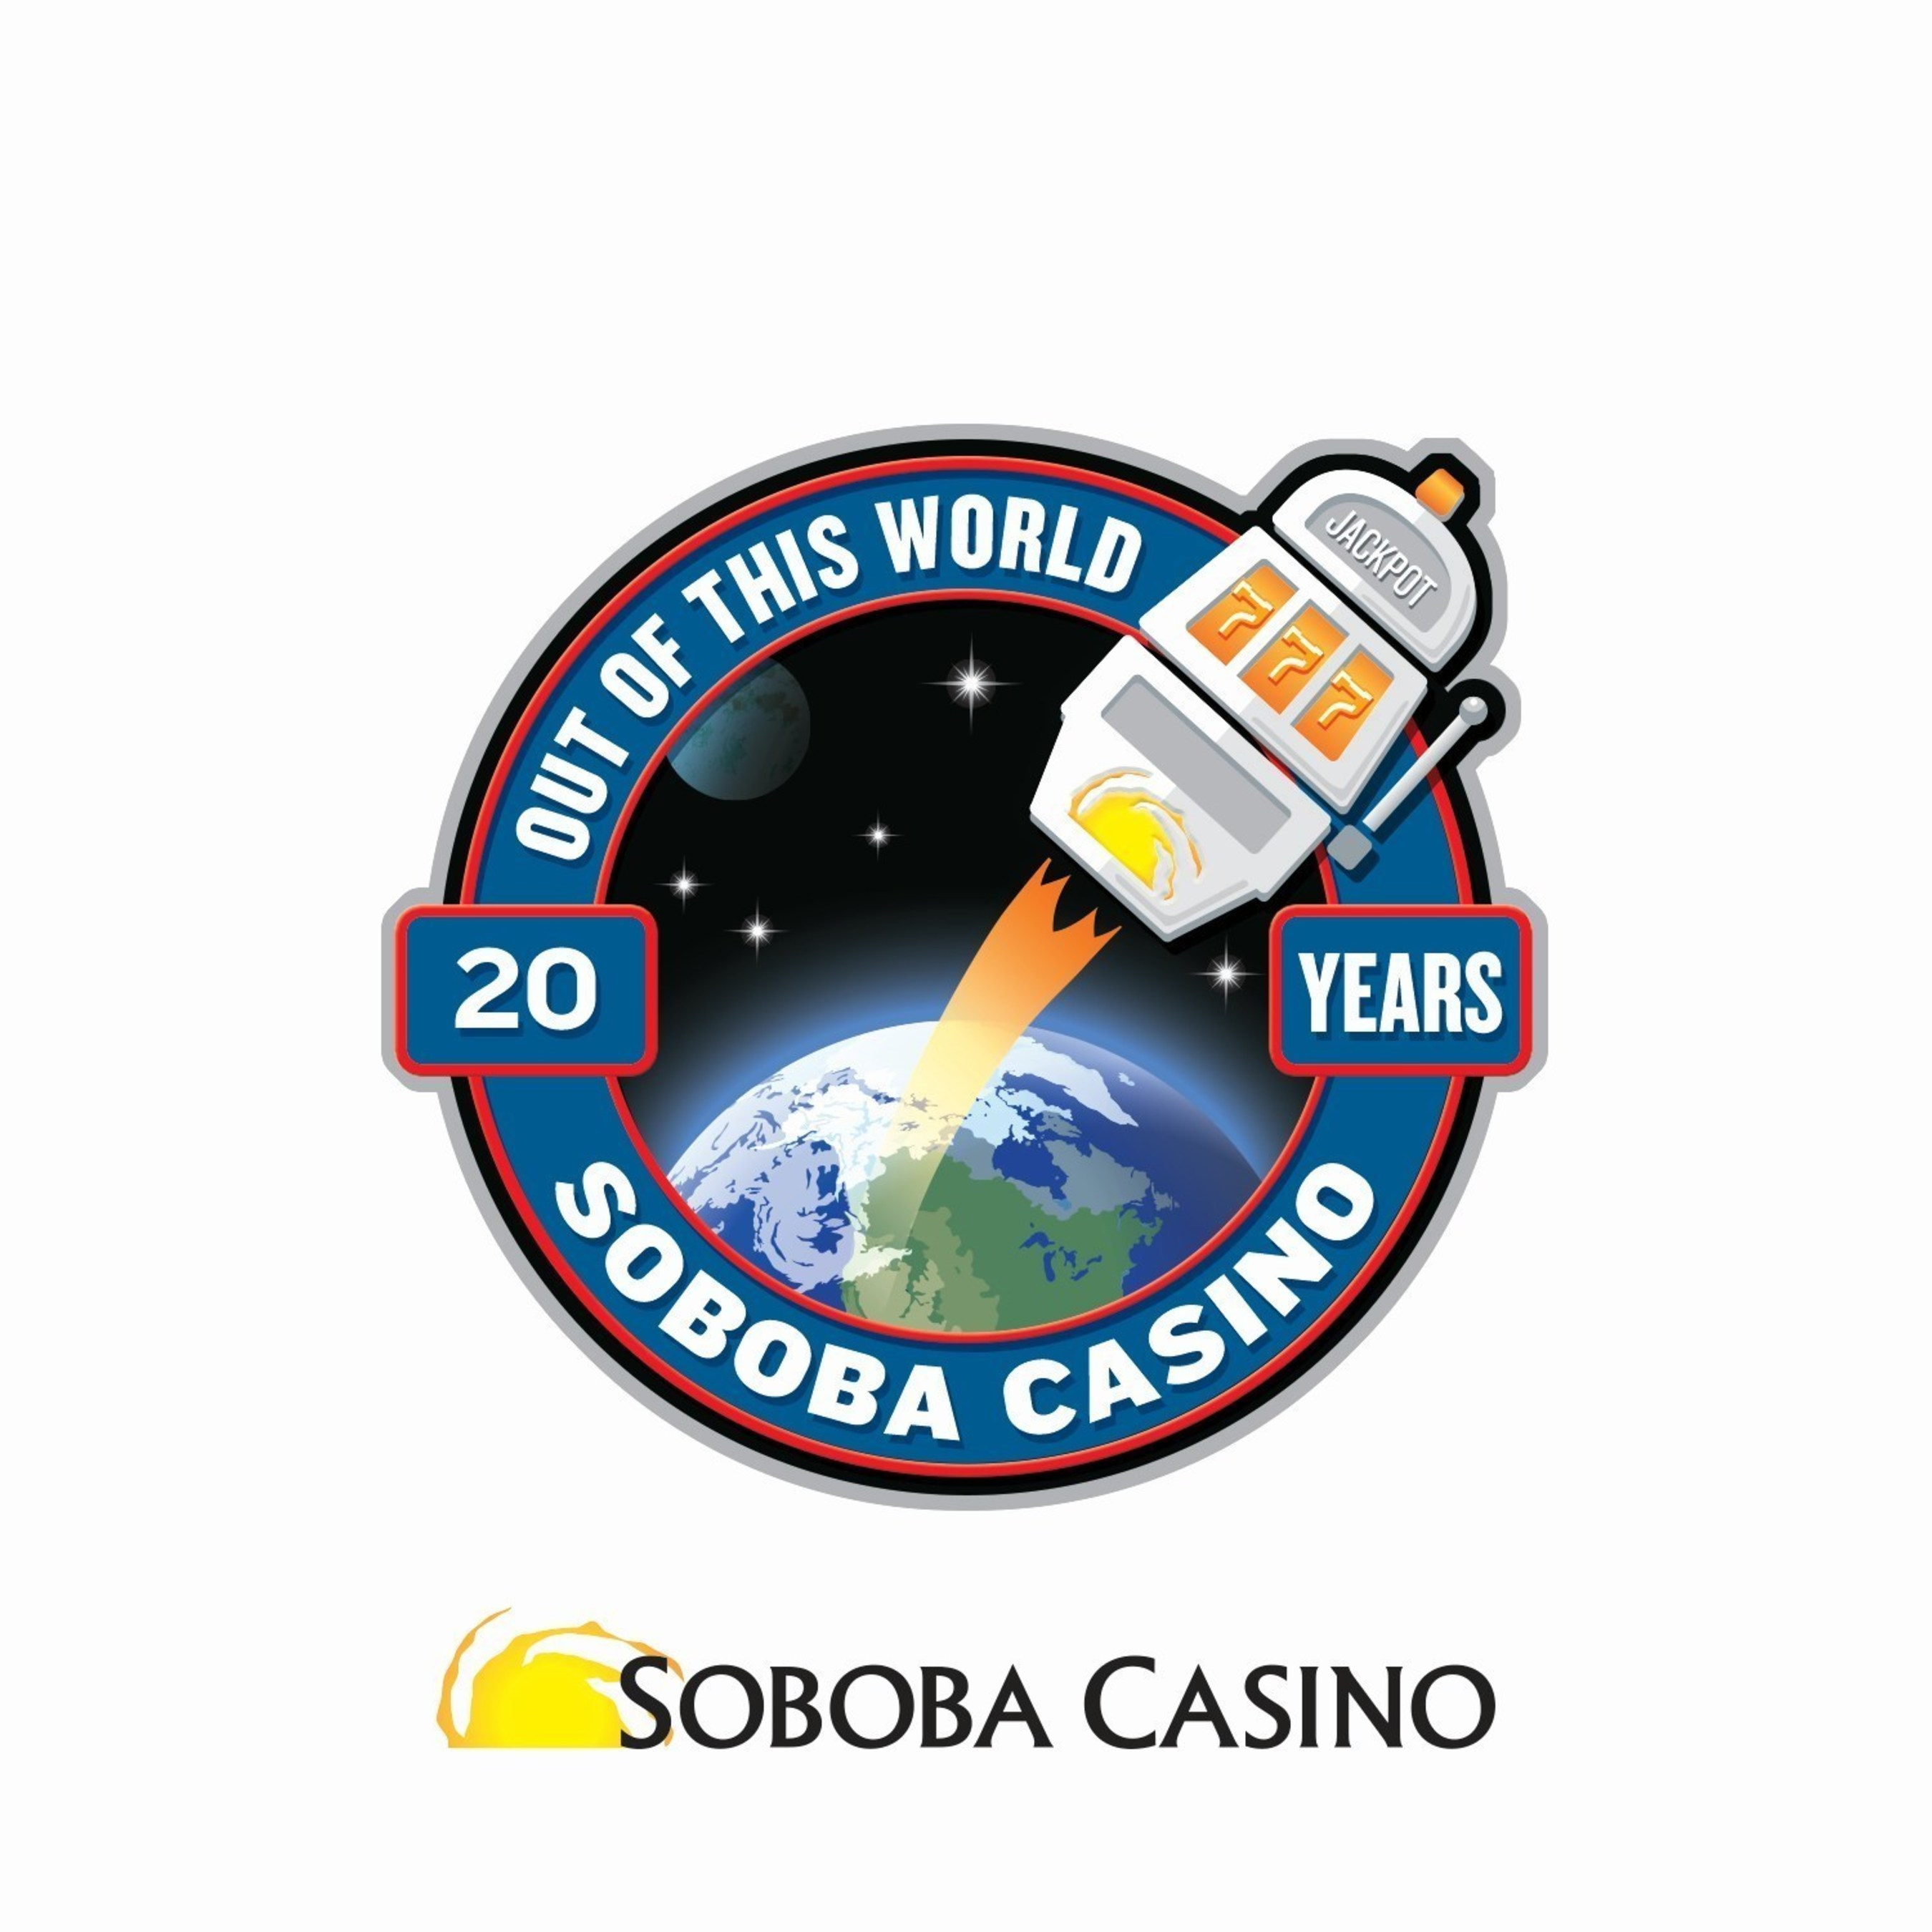 Soboba Casino celebrates 20 years by boldly going where no casino has gone before.